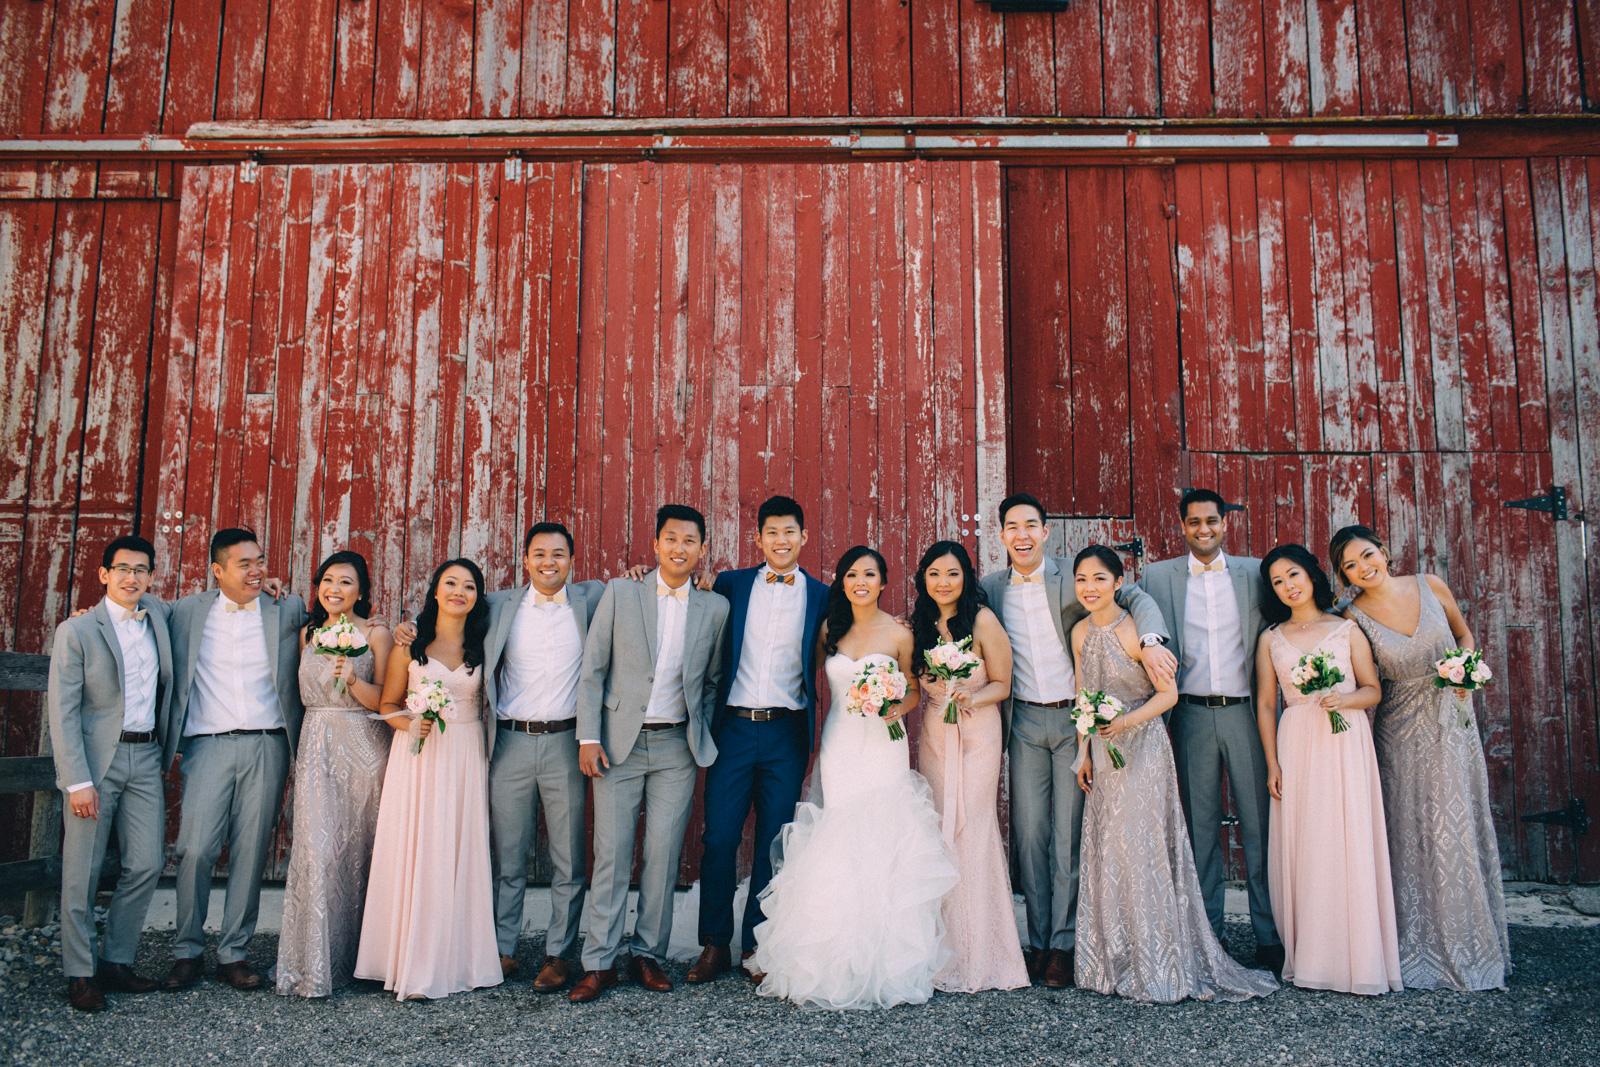 cambium-farms-wedding-photography-by-sam-wong-of-artanis-collective_40